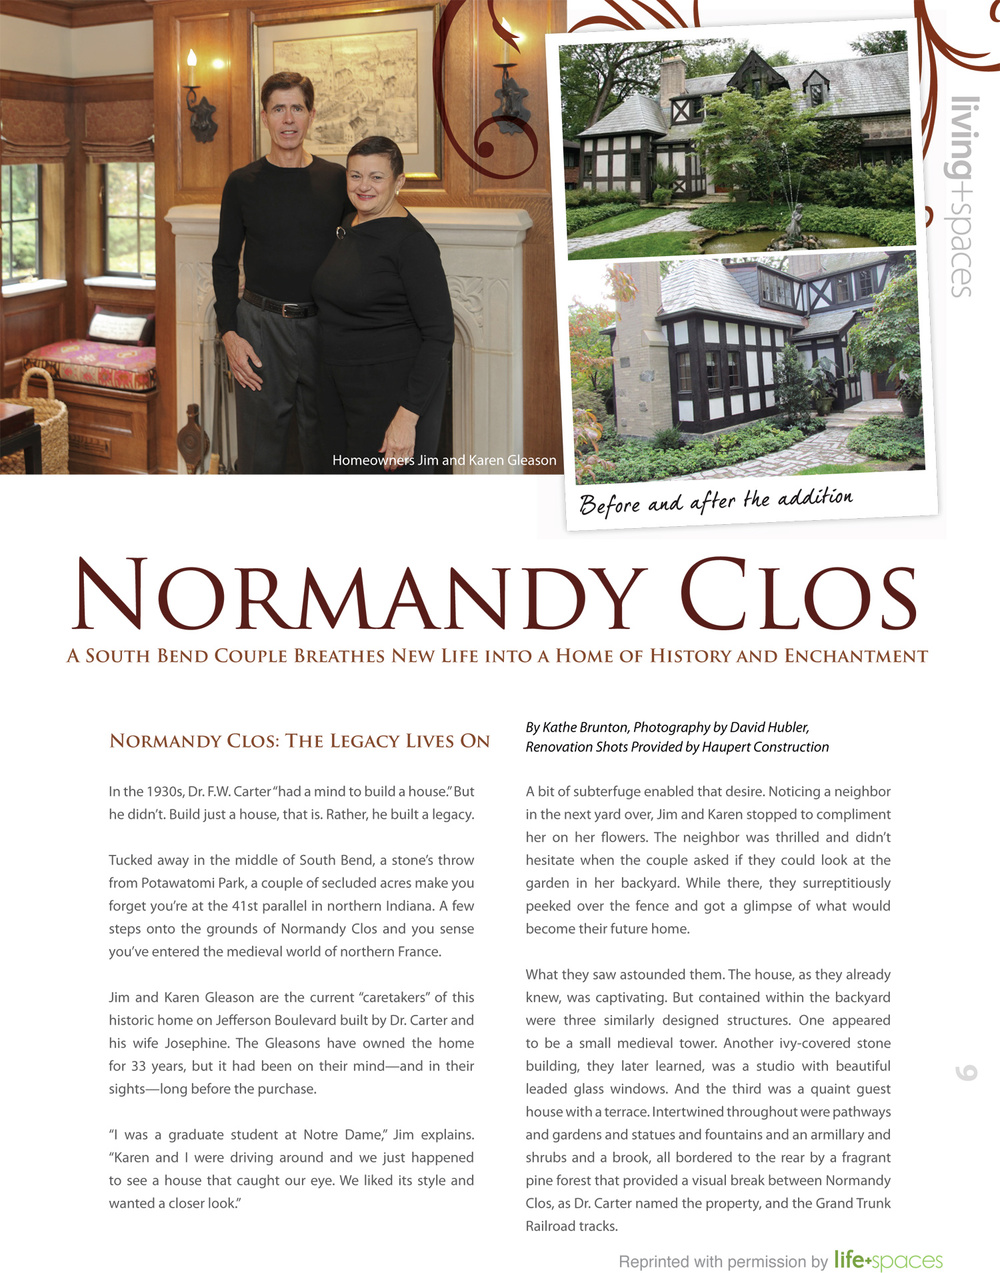 Normandy-Clos-Article-pg-1.jpg